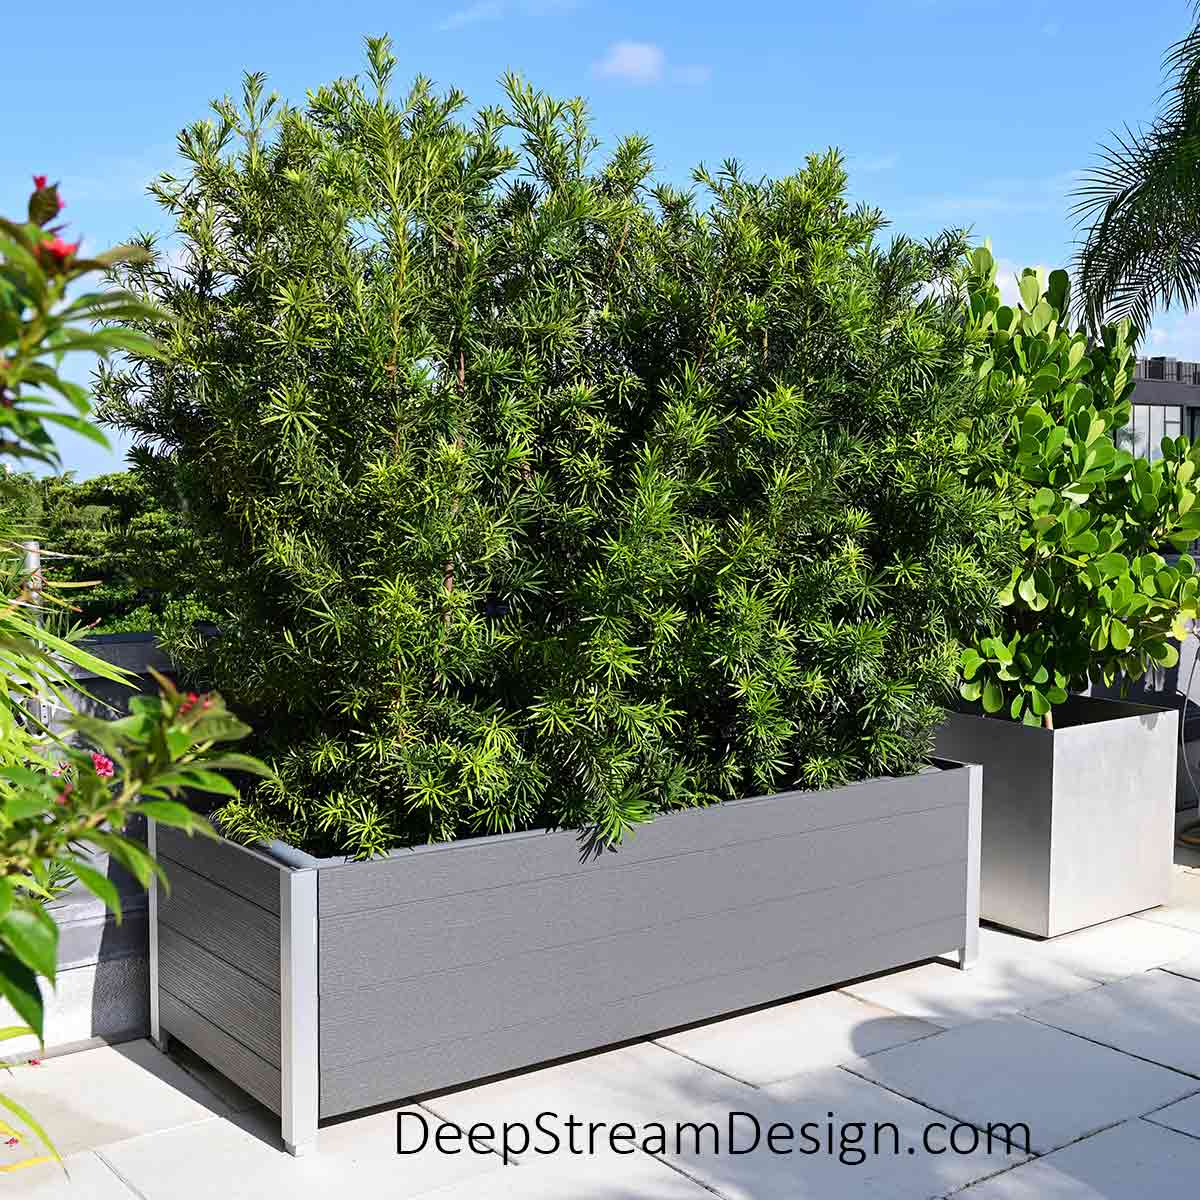 Two DeepStream planters create a tall, natural, Planter Privacy Screen on a Penthouse rooftop deck. A large dark gray Mariner recycled plastic lumber commercial wood restaurant planter privacy screen growing dark green podocarpus 8-feet-tall and a natural aluminum large cube shaped planter privacy screen growing a lighter green sea grape tree.